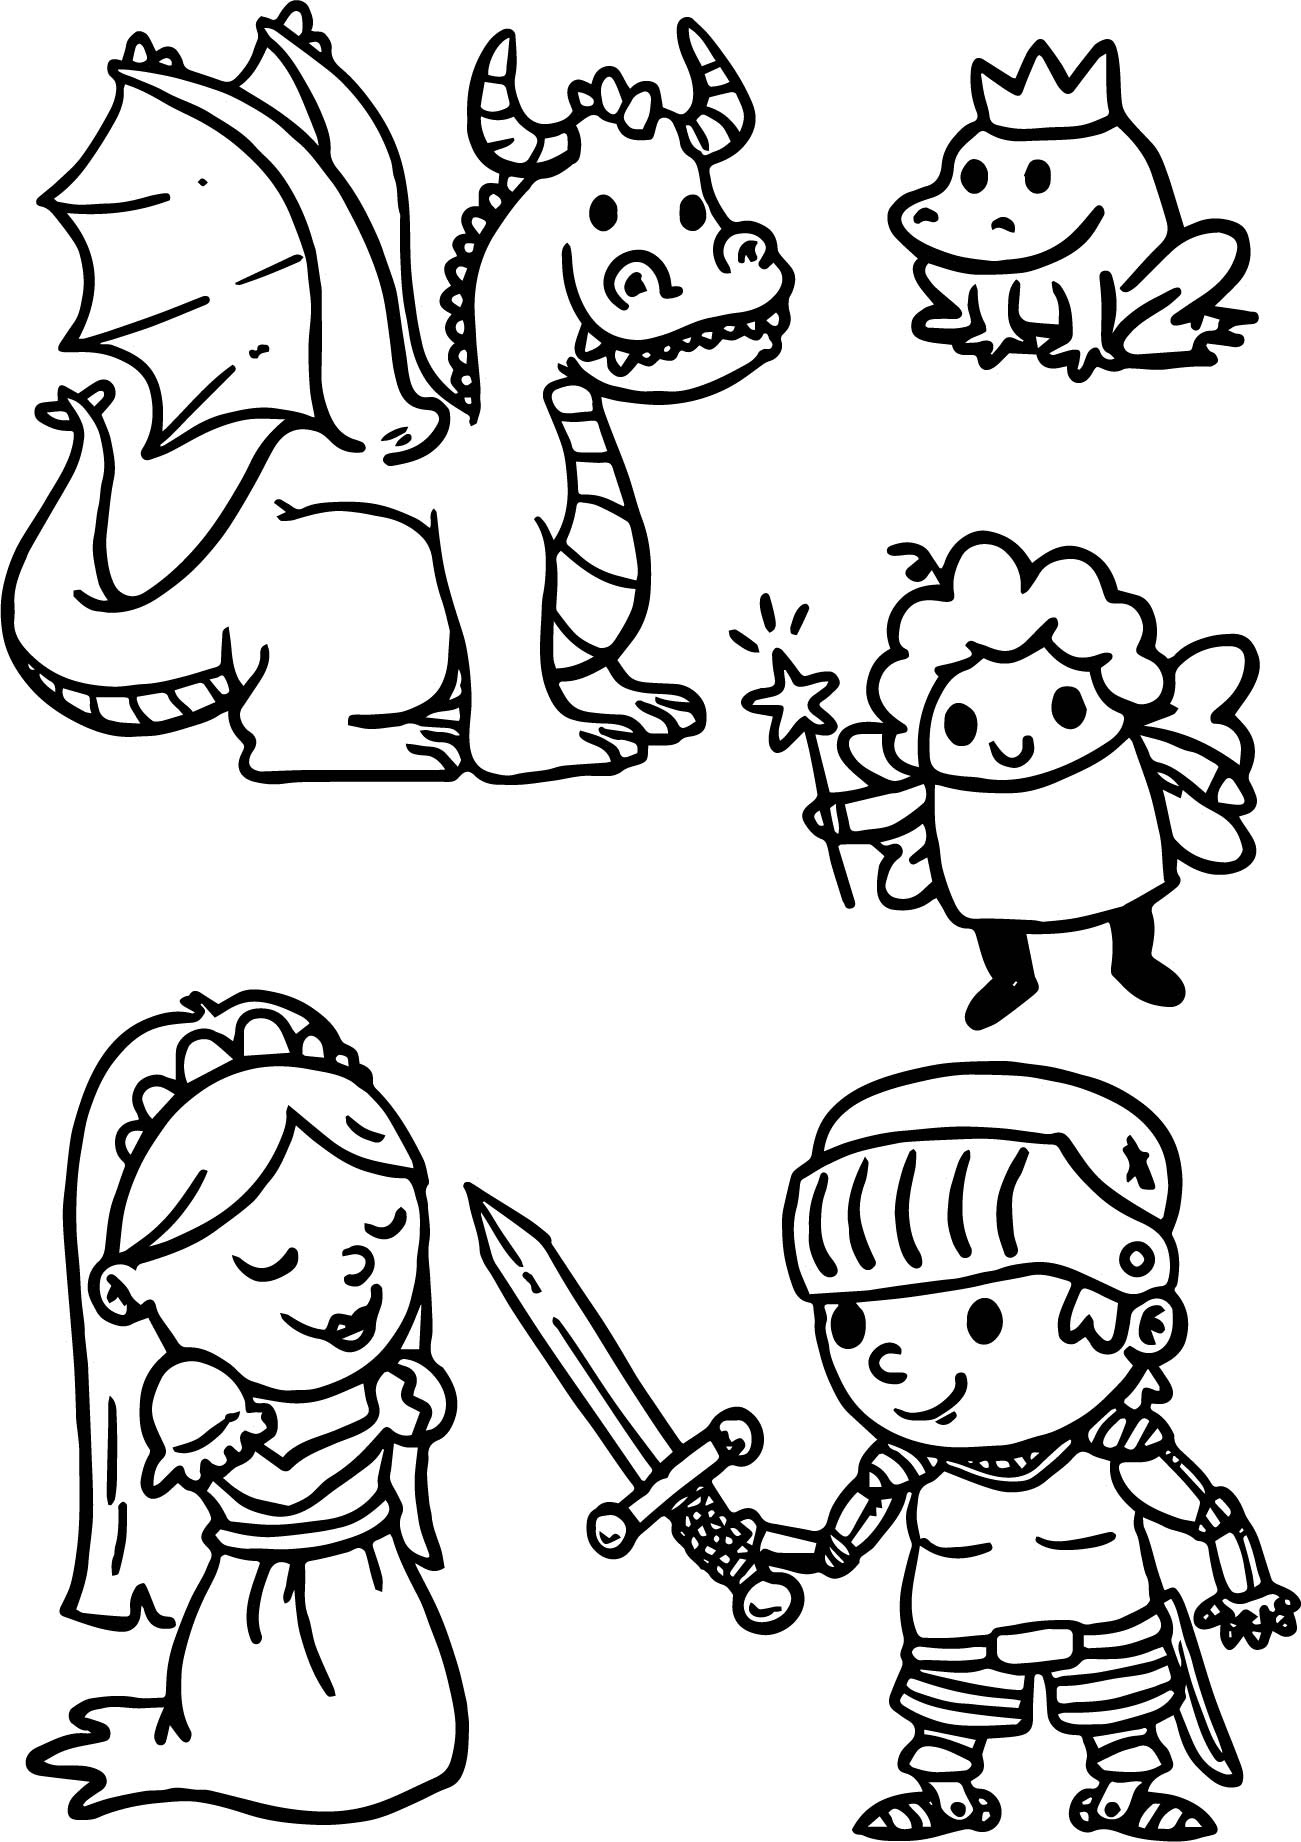 Cute Cartoons Of Fairy Tale Coloring Page | Wecoloringpage.com